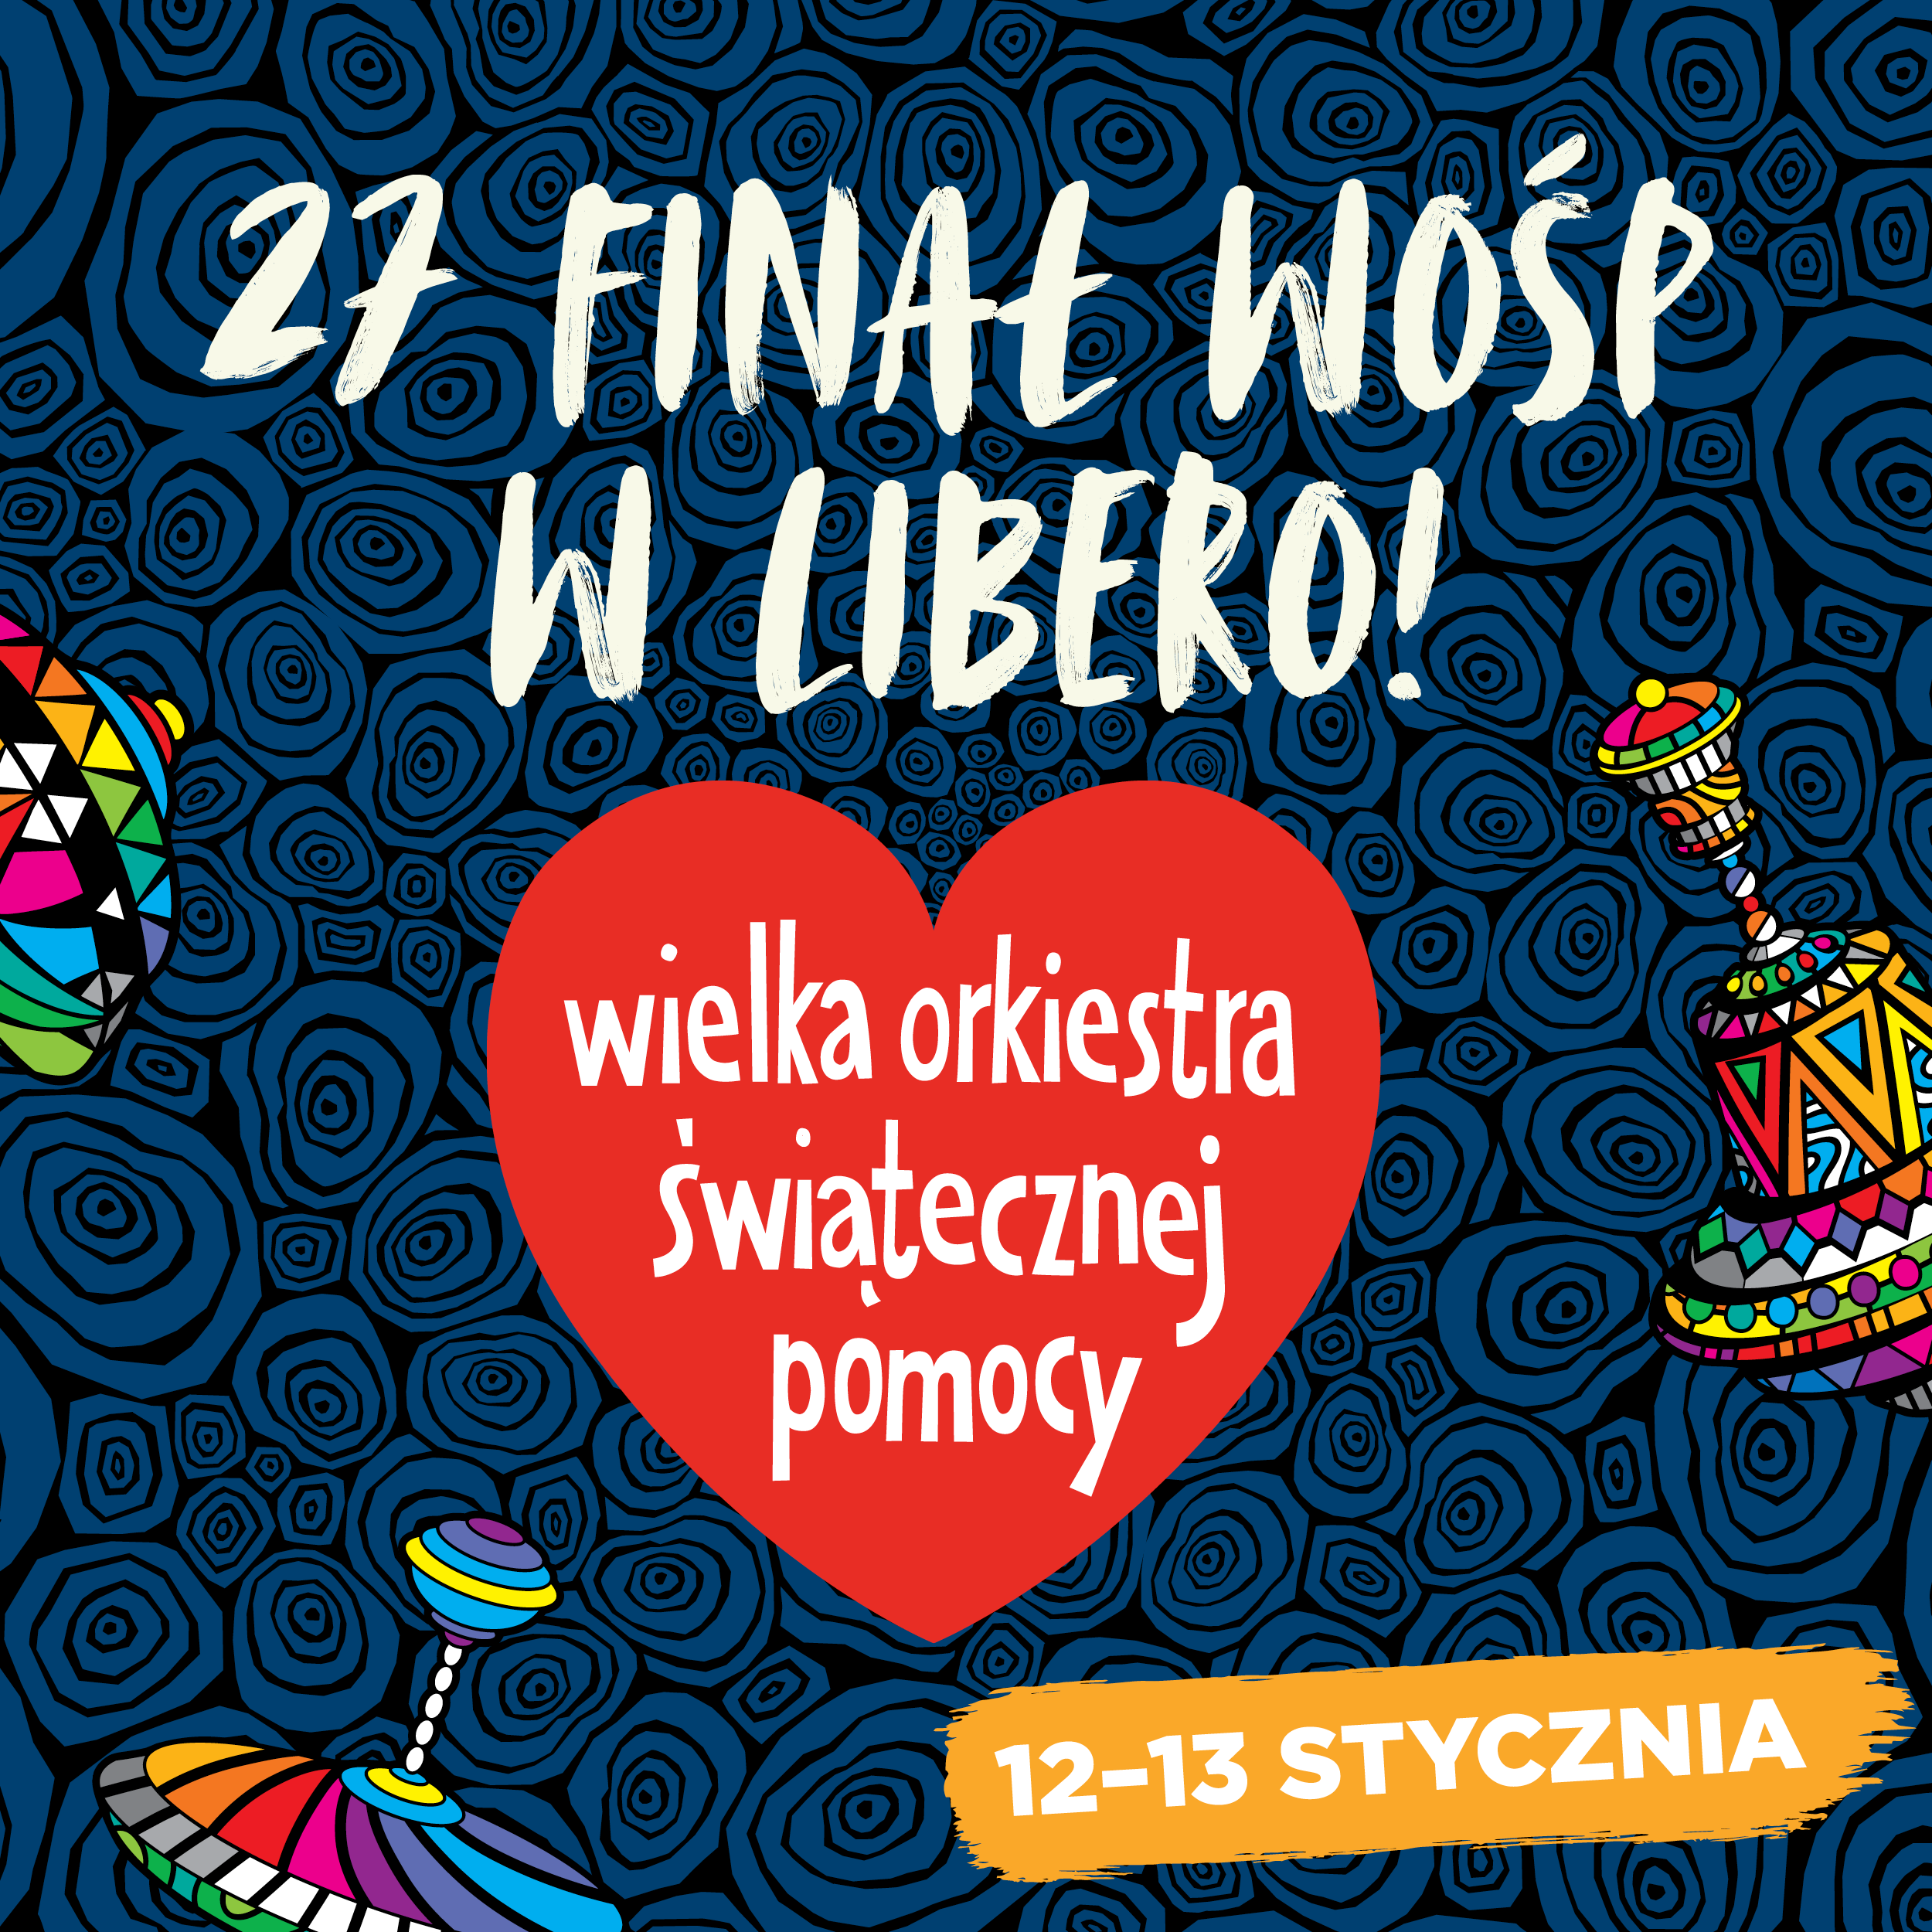 Libero will play with the WOŚP Orchestra. Not once, but twice!